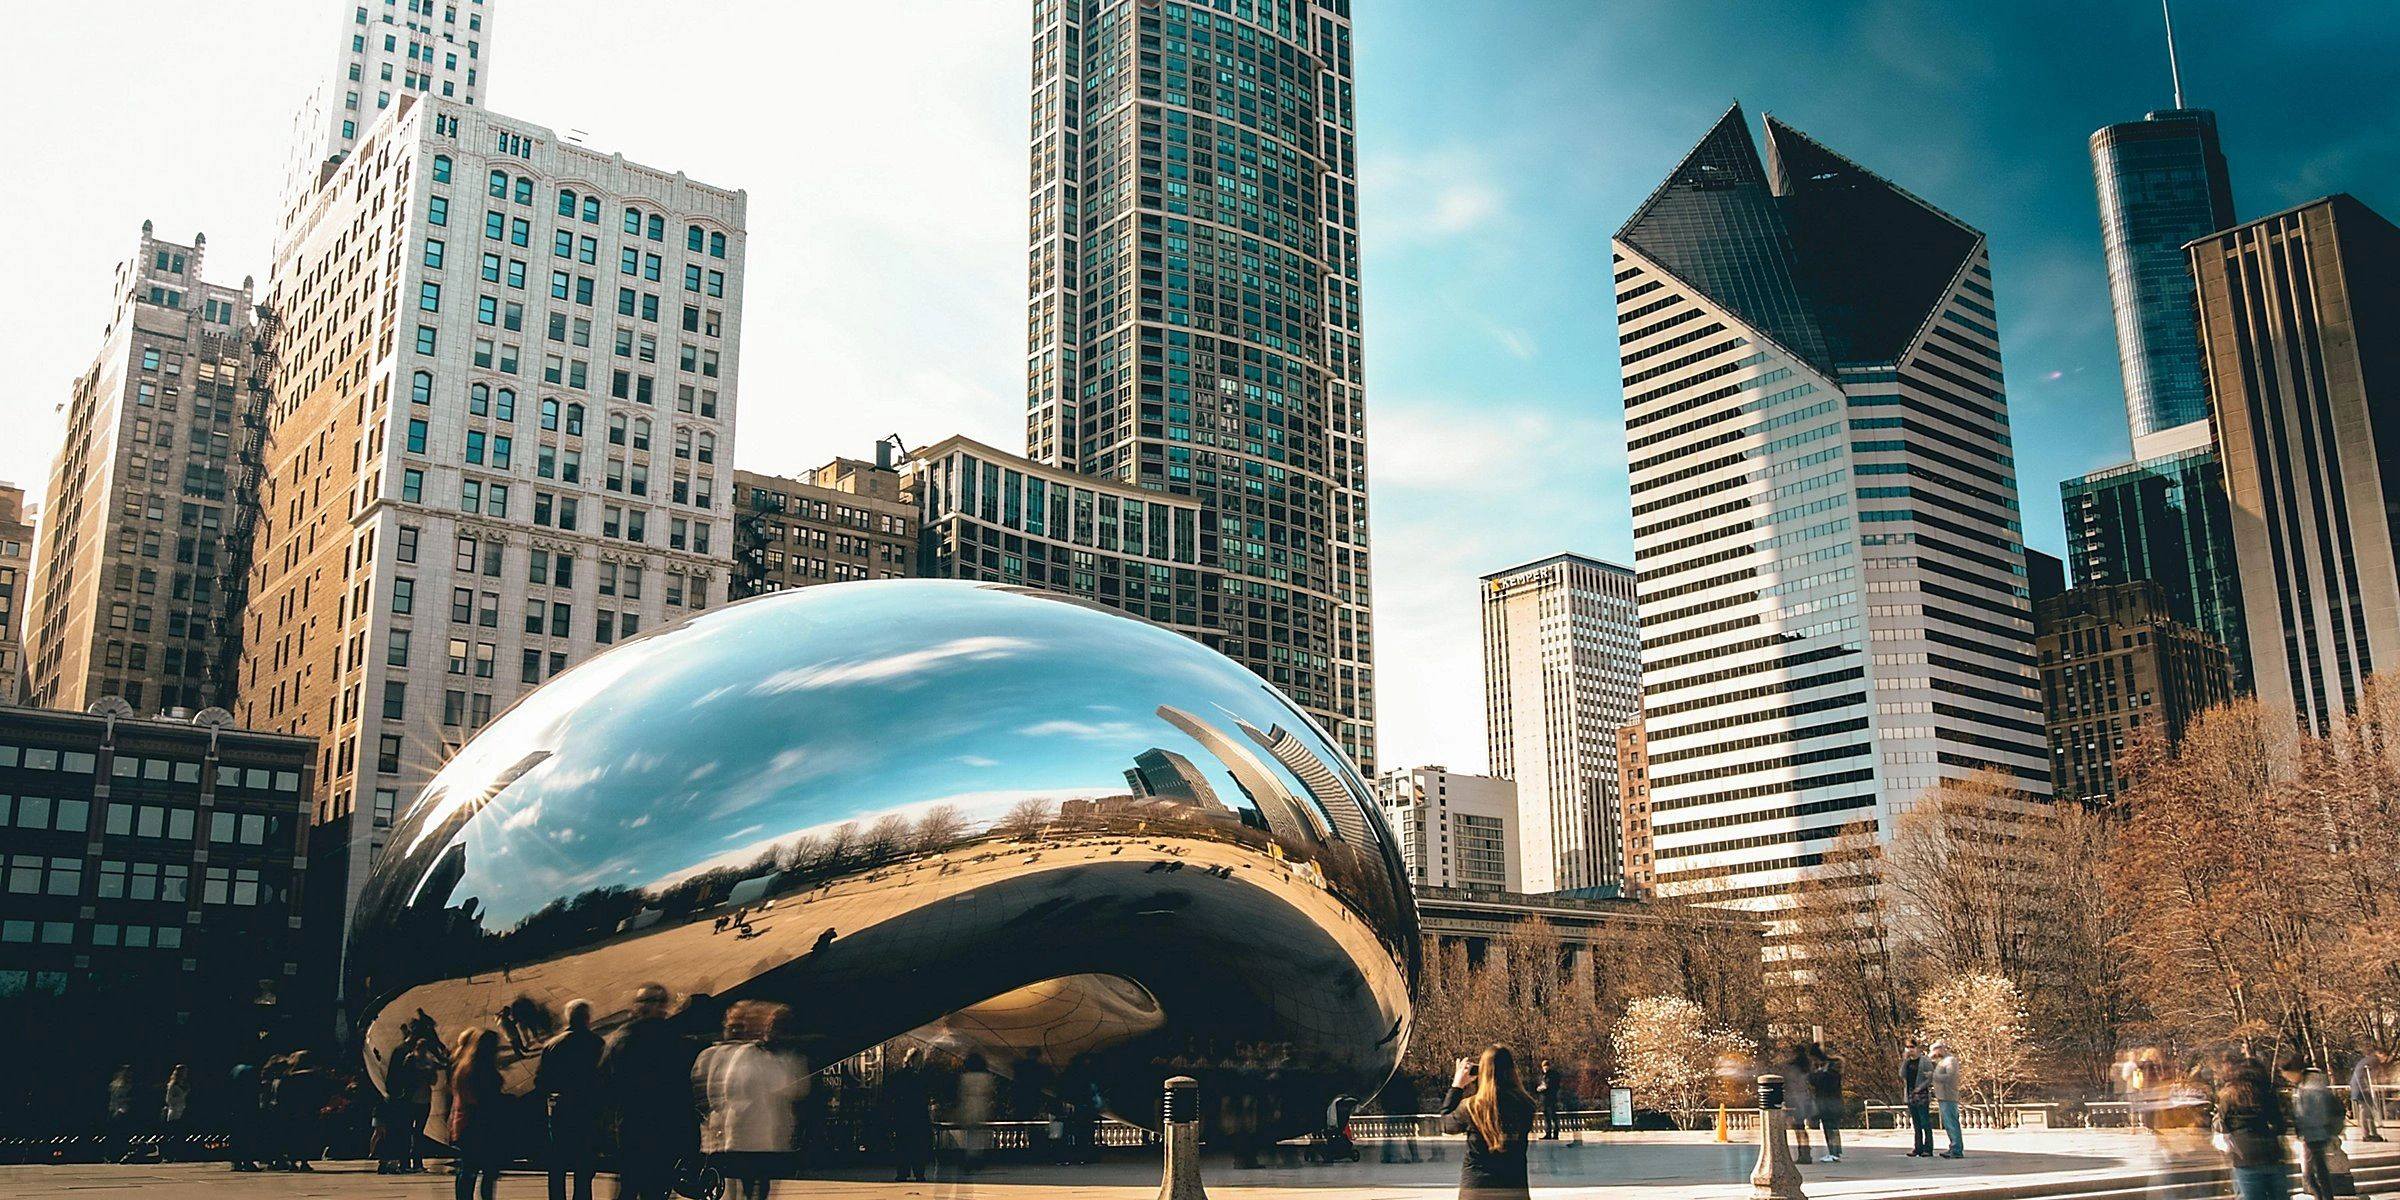 Chicago bus charter and minibus rental coach transportation company & shuttle services from airports